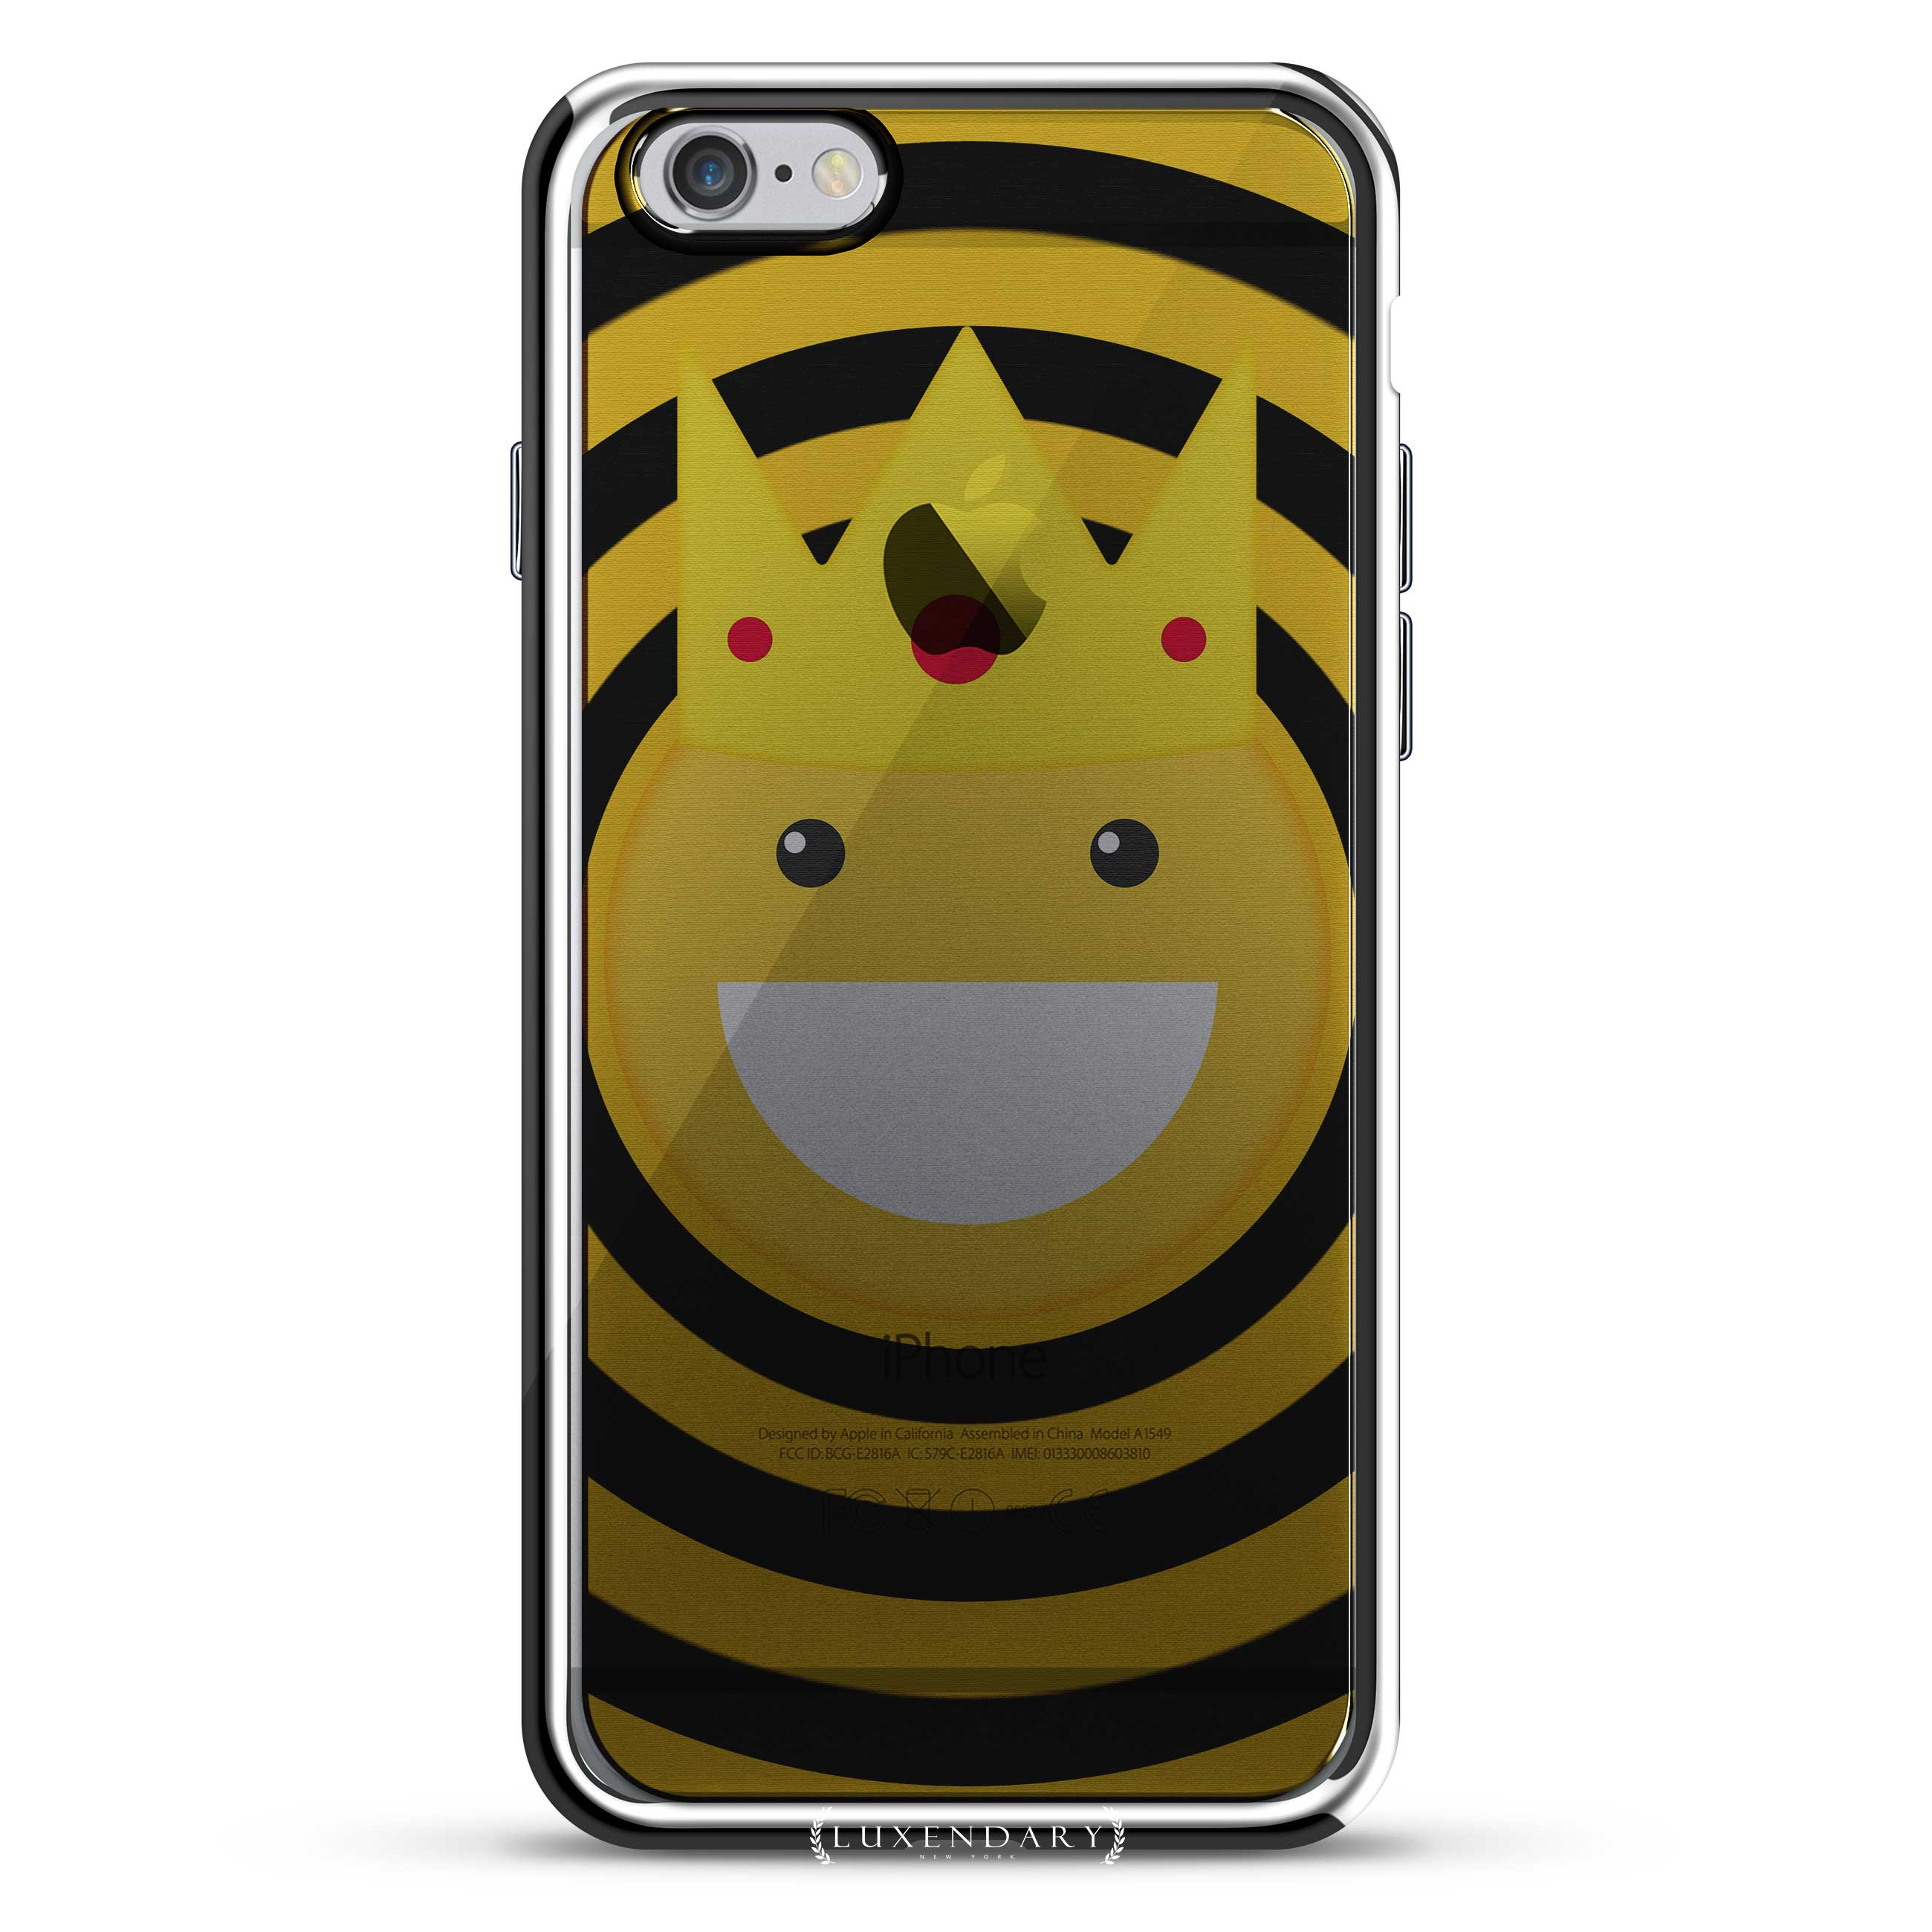 PREMIUM ARMOR DROP-PROOF HIGH QUALITY FASHION DESIGNER ARTIST IPHONE